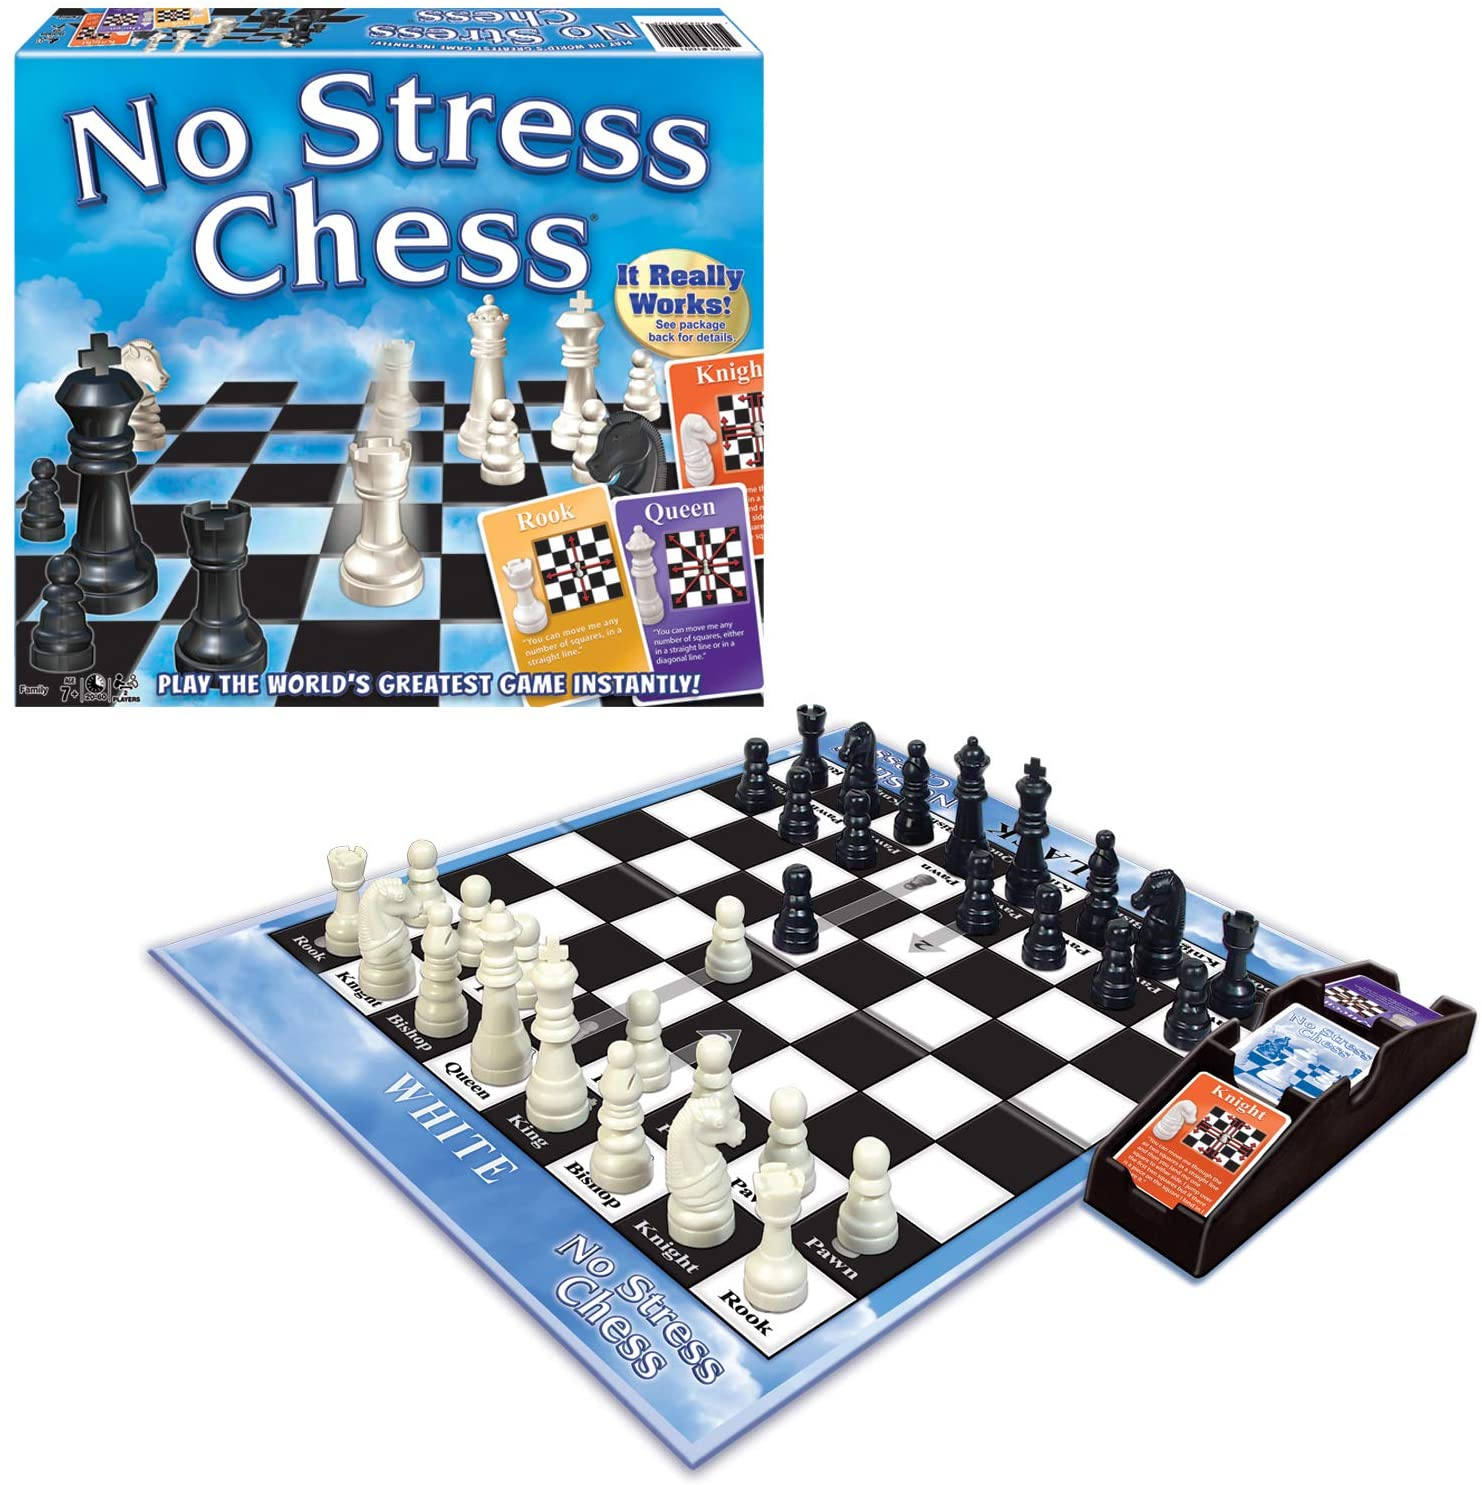 Best chess game for beginners